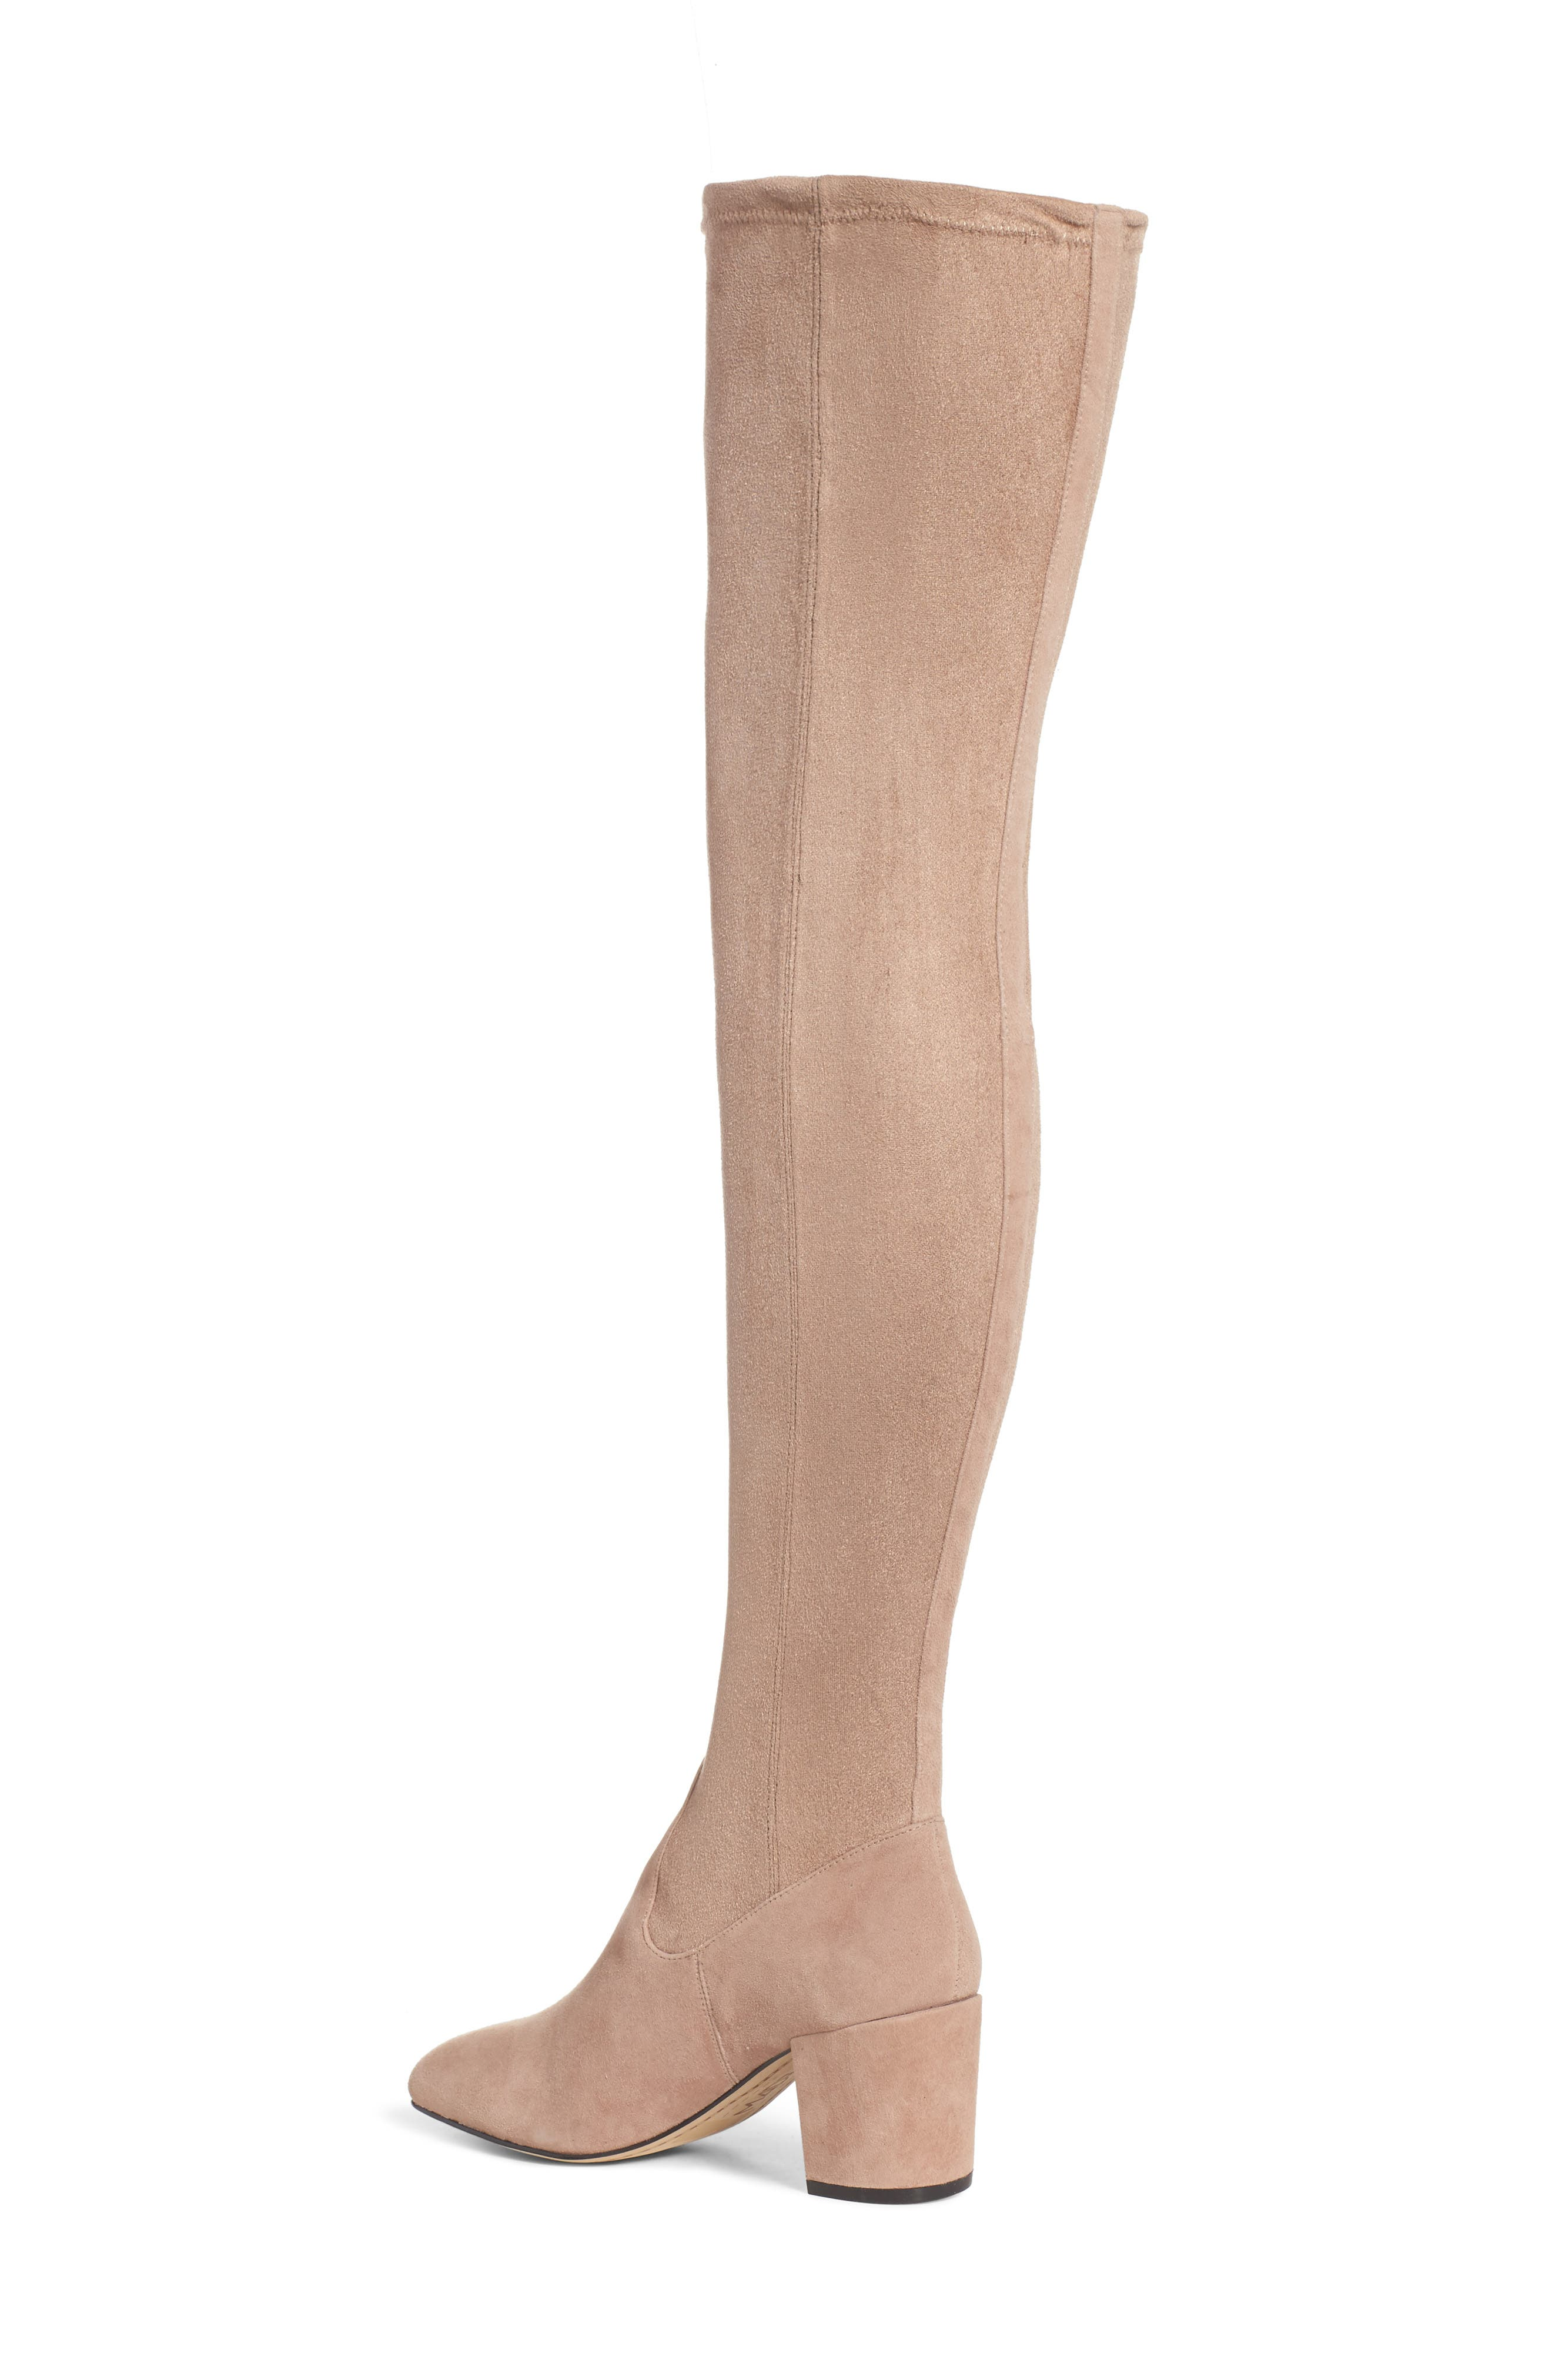 M4D3 Sobrina Over the Knee Boot,                             Alternate thumbnail 4, color,